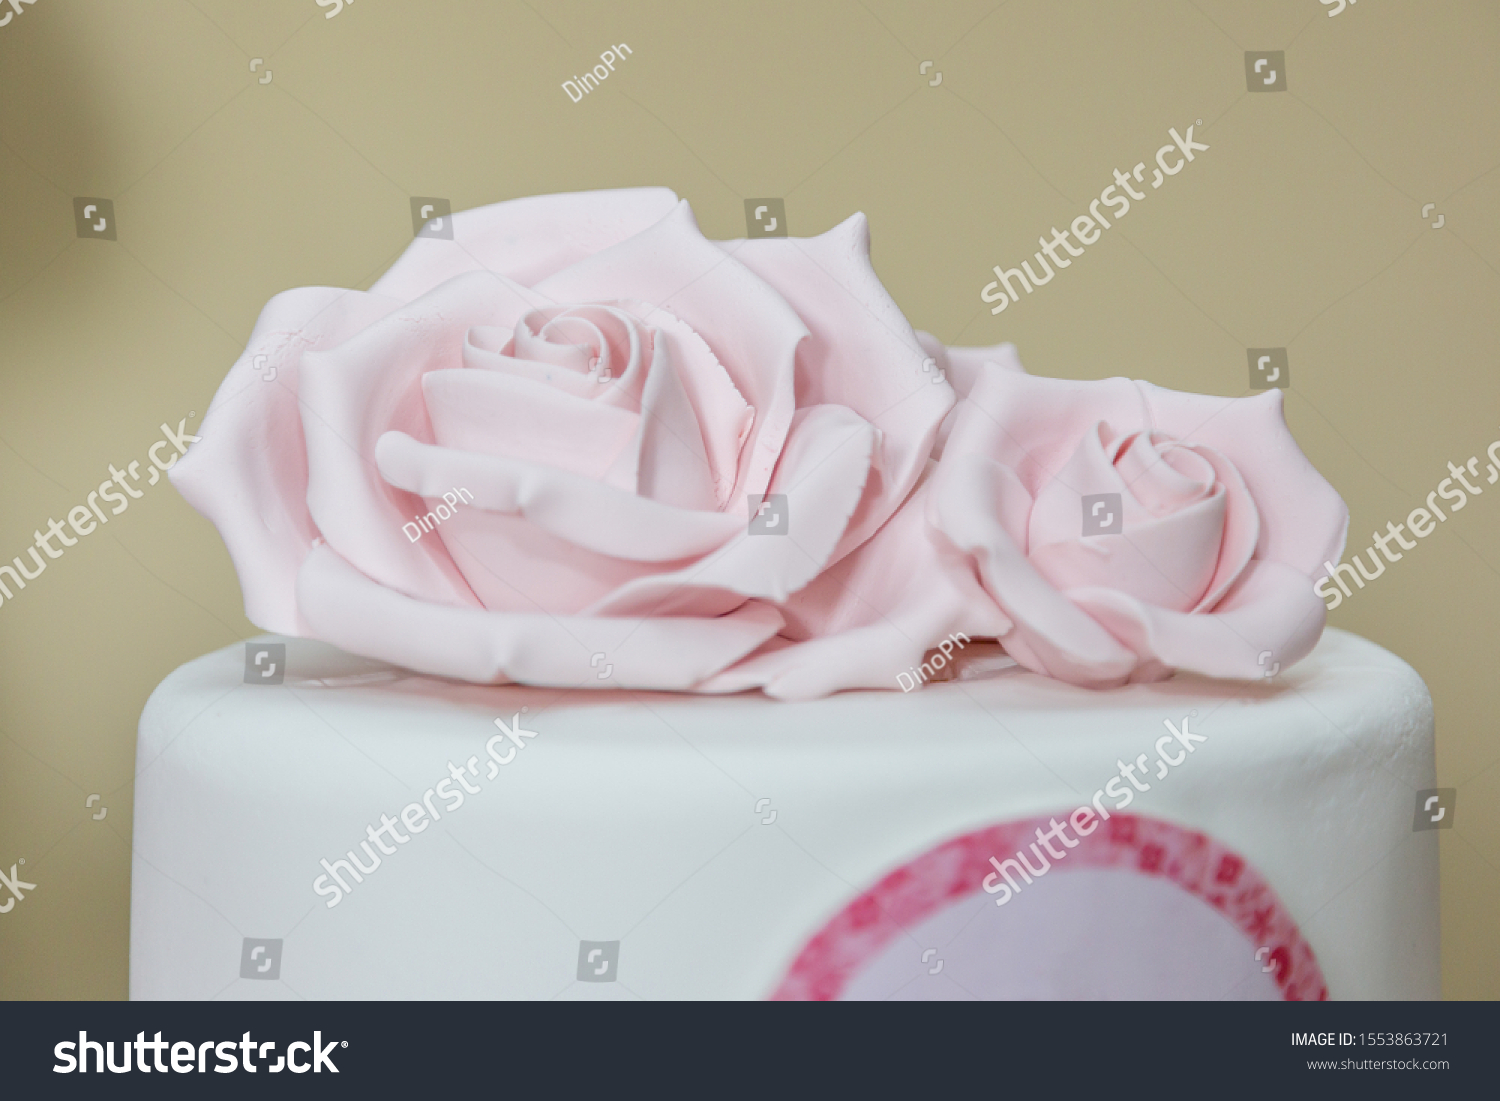 Wondrous Rose Flower Details On Birthday Cake Stock Photo Edit Now 1553863721 Funny Birthday Cards Online Alyptdamsfinfo